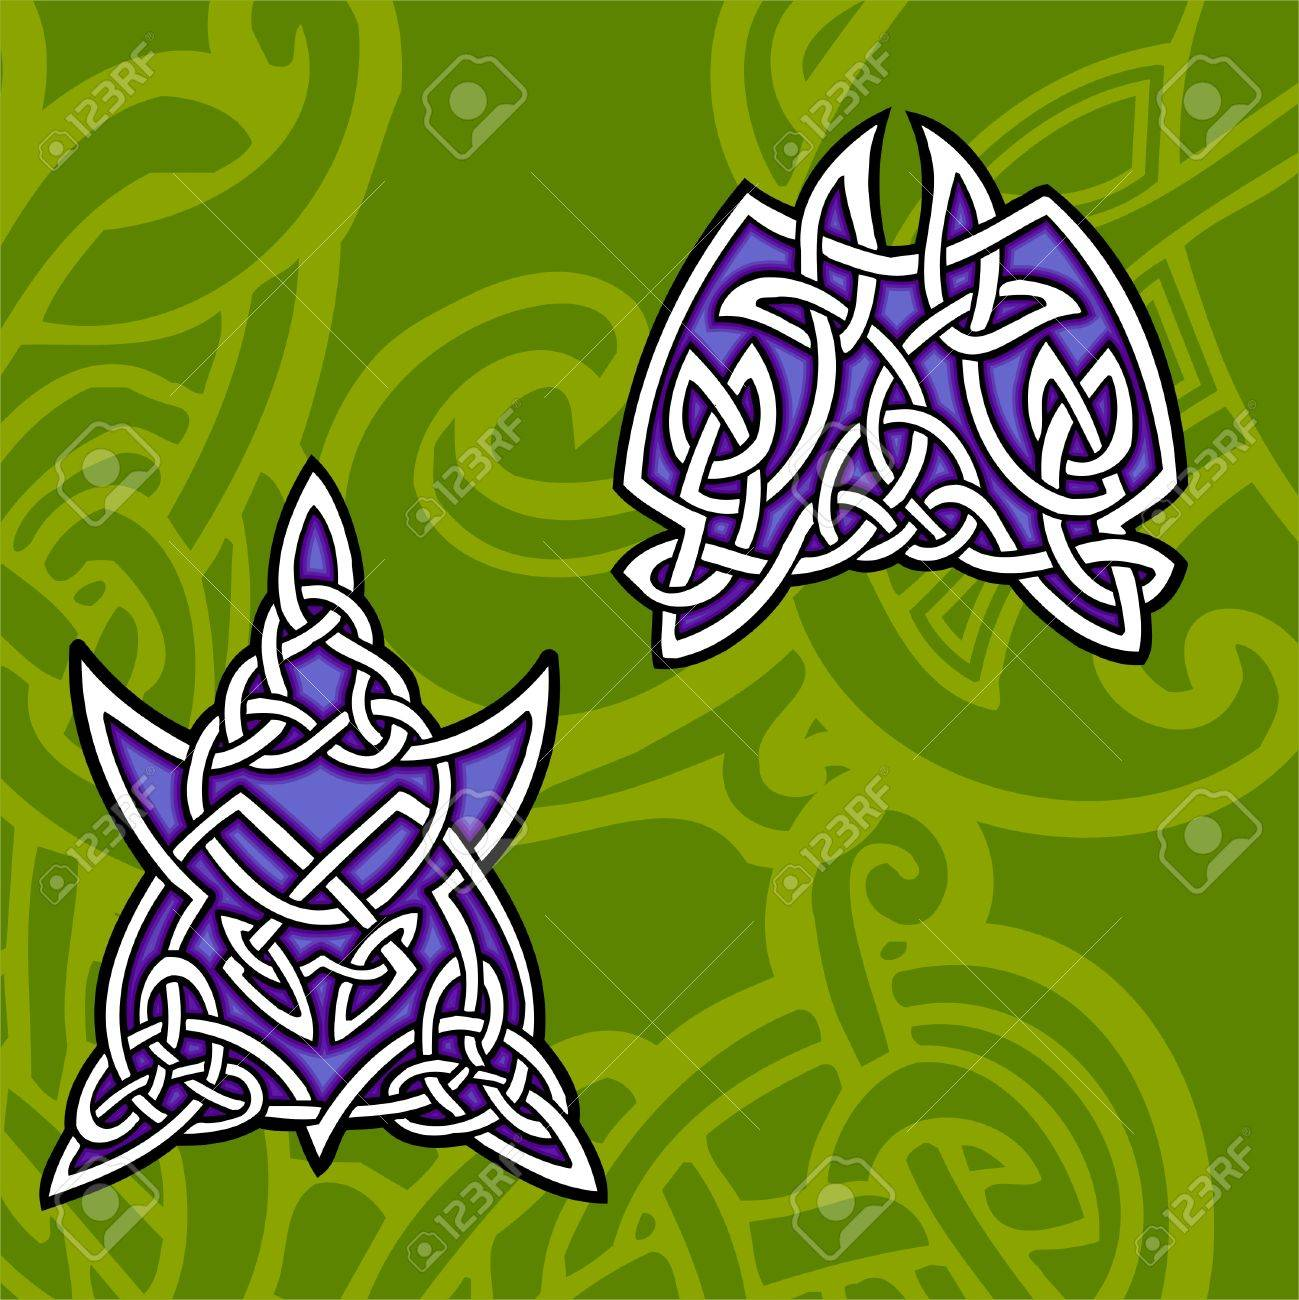 Celtic ornamental design. Illustration. Vinyl-Ready. Stock Vector - 8268934